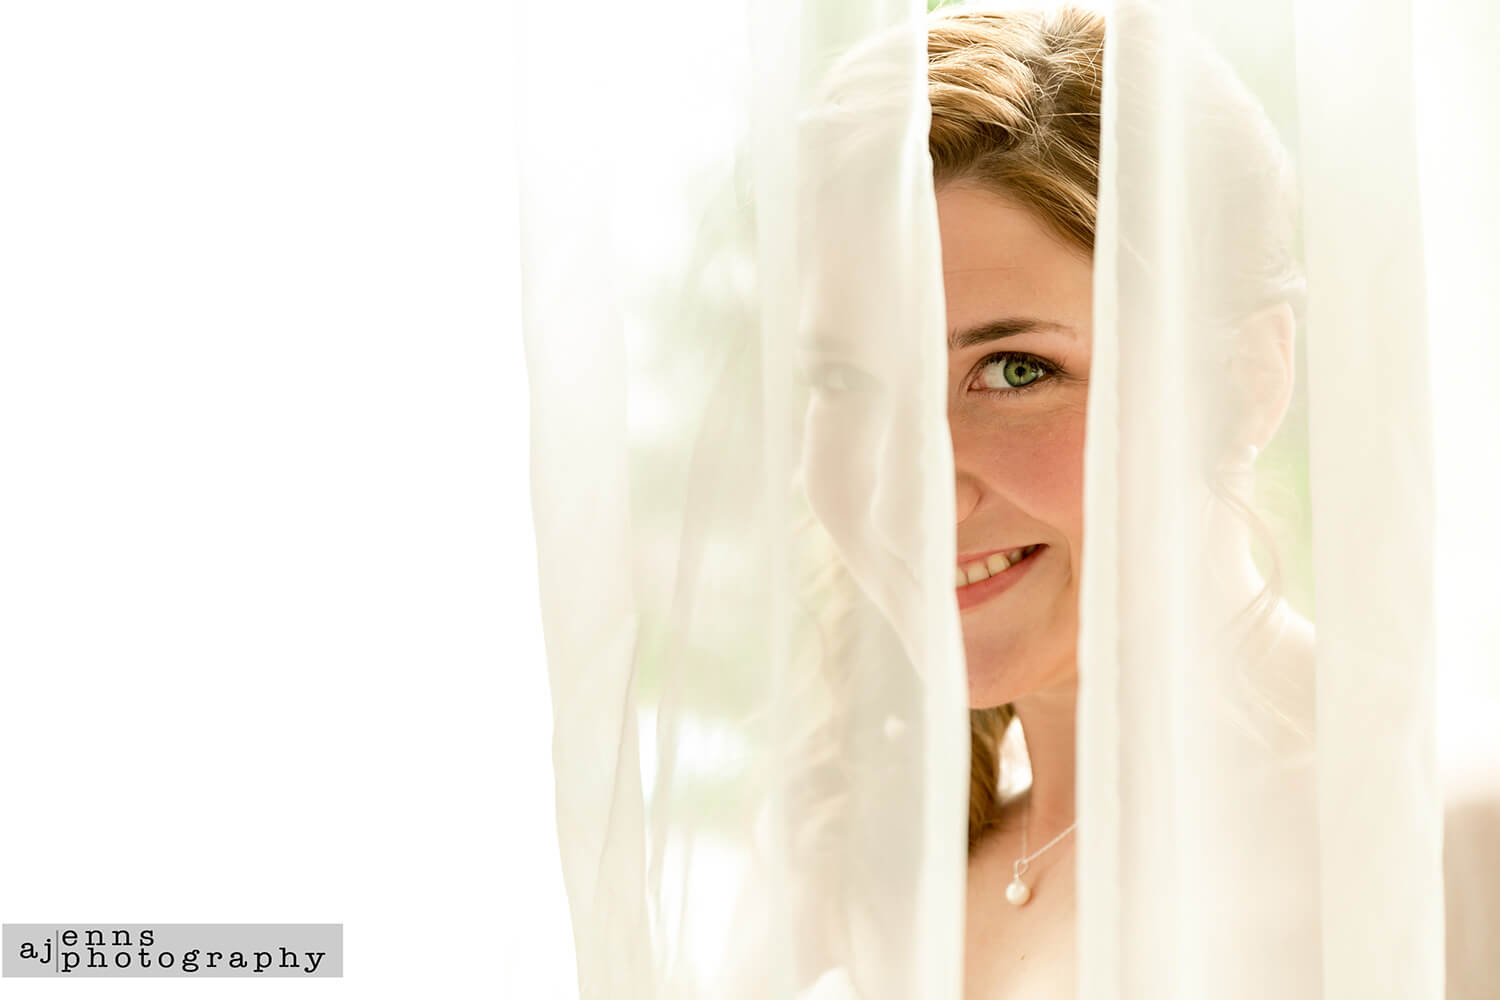 The bride peering through the sheer curtains